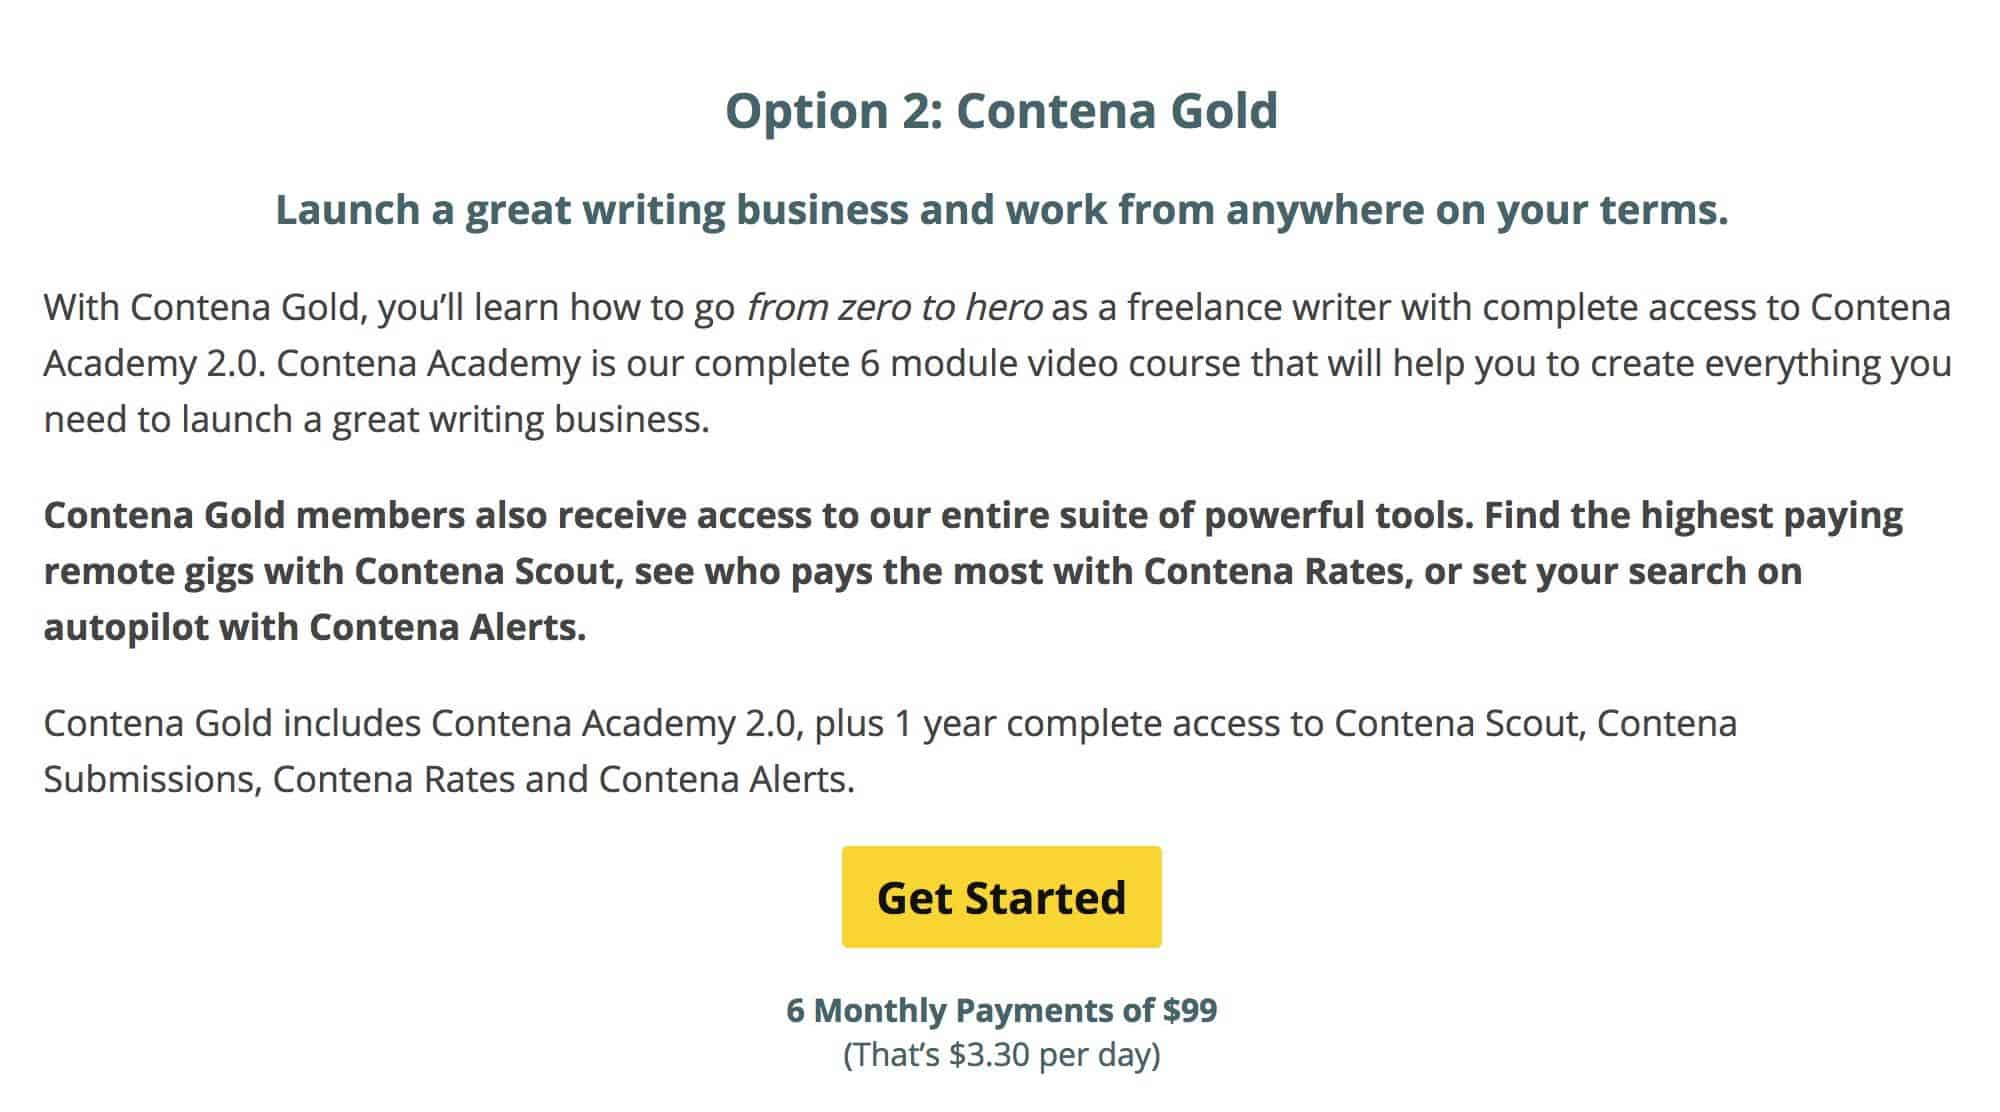 Contena Gold pricing